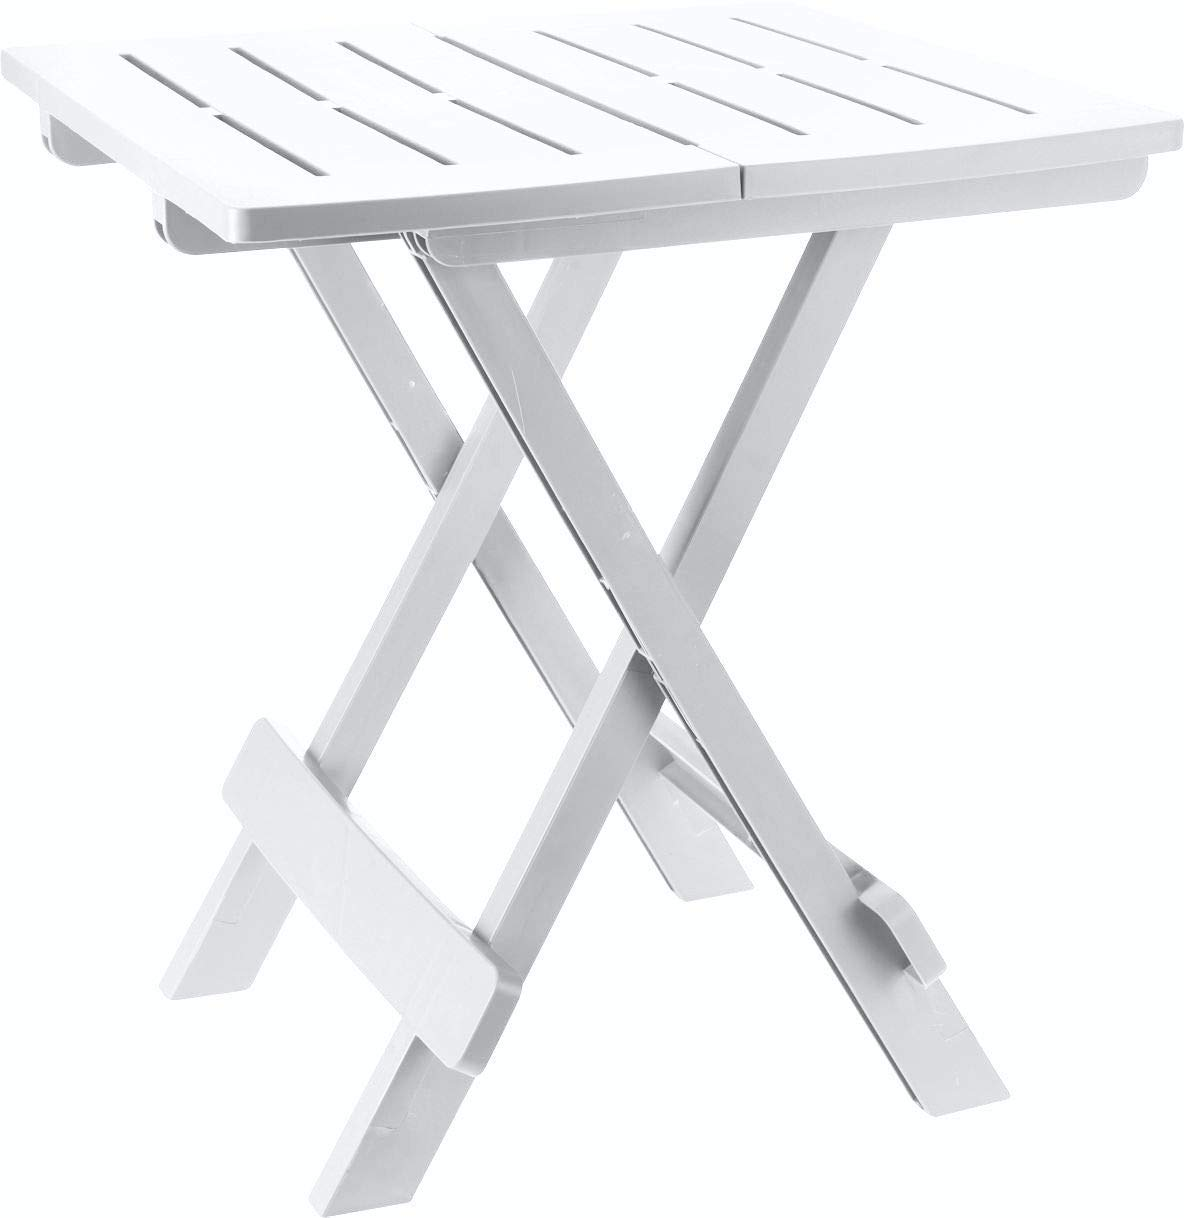 Ipae-Progarden Adige Folding Table, White, 44 x 44 x 50 cm